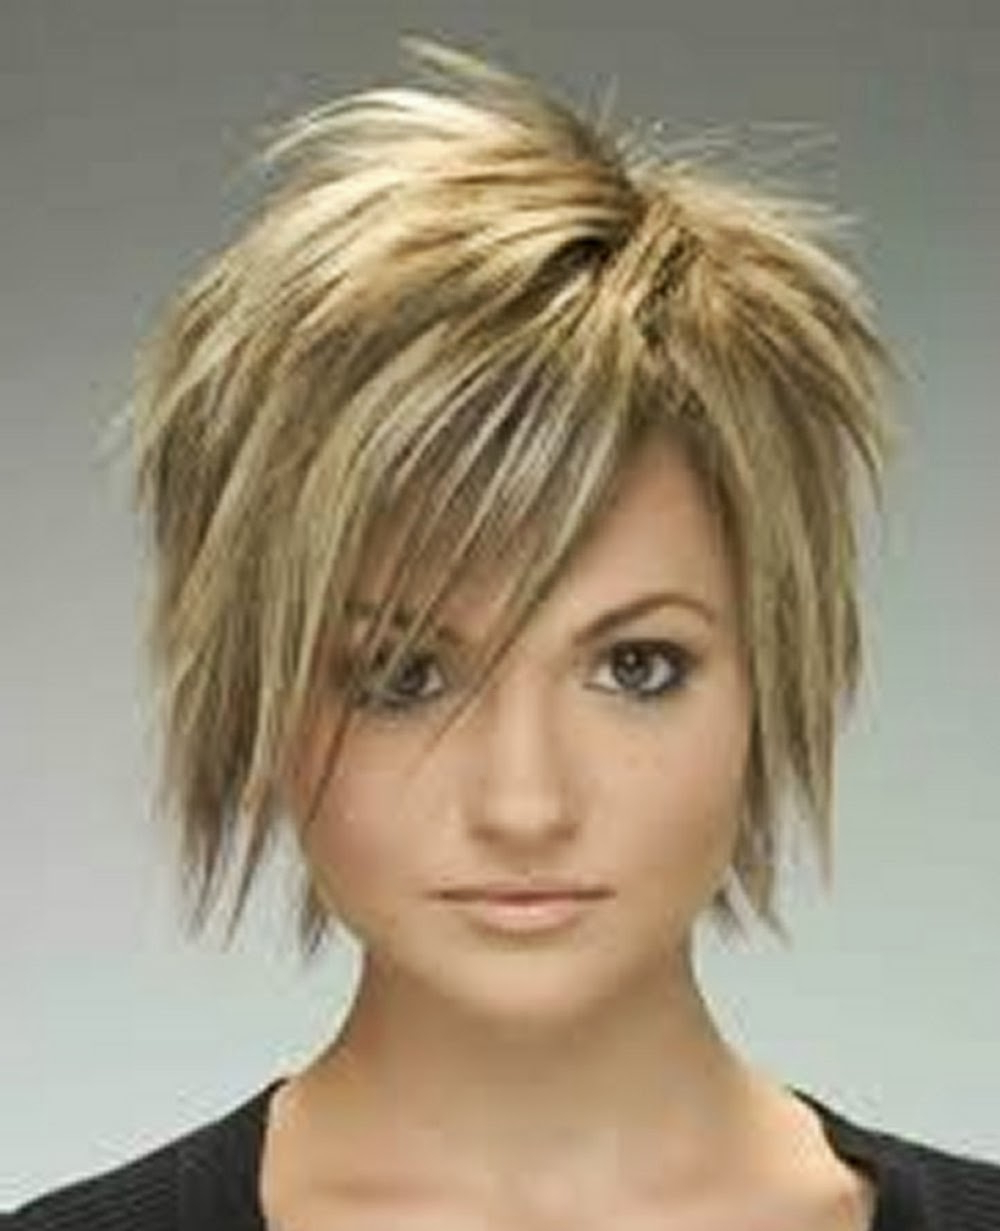 25 Fantastic Short Haircut Inspirations For 2015 – Tipsaholic Throughout Short Bob Hairstyles With Long Edgy Layers (View 7 of 20)